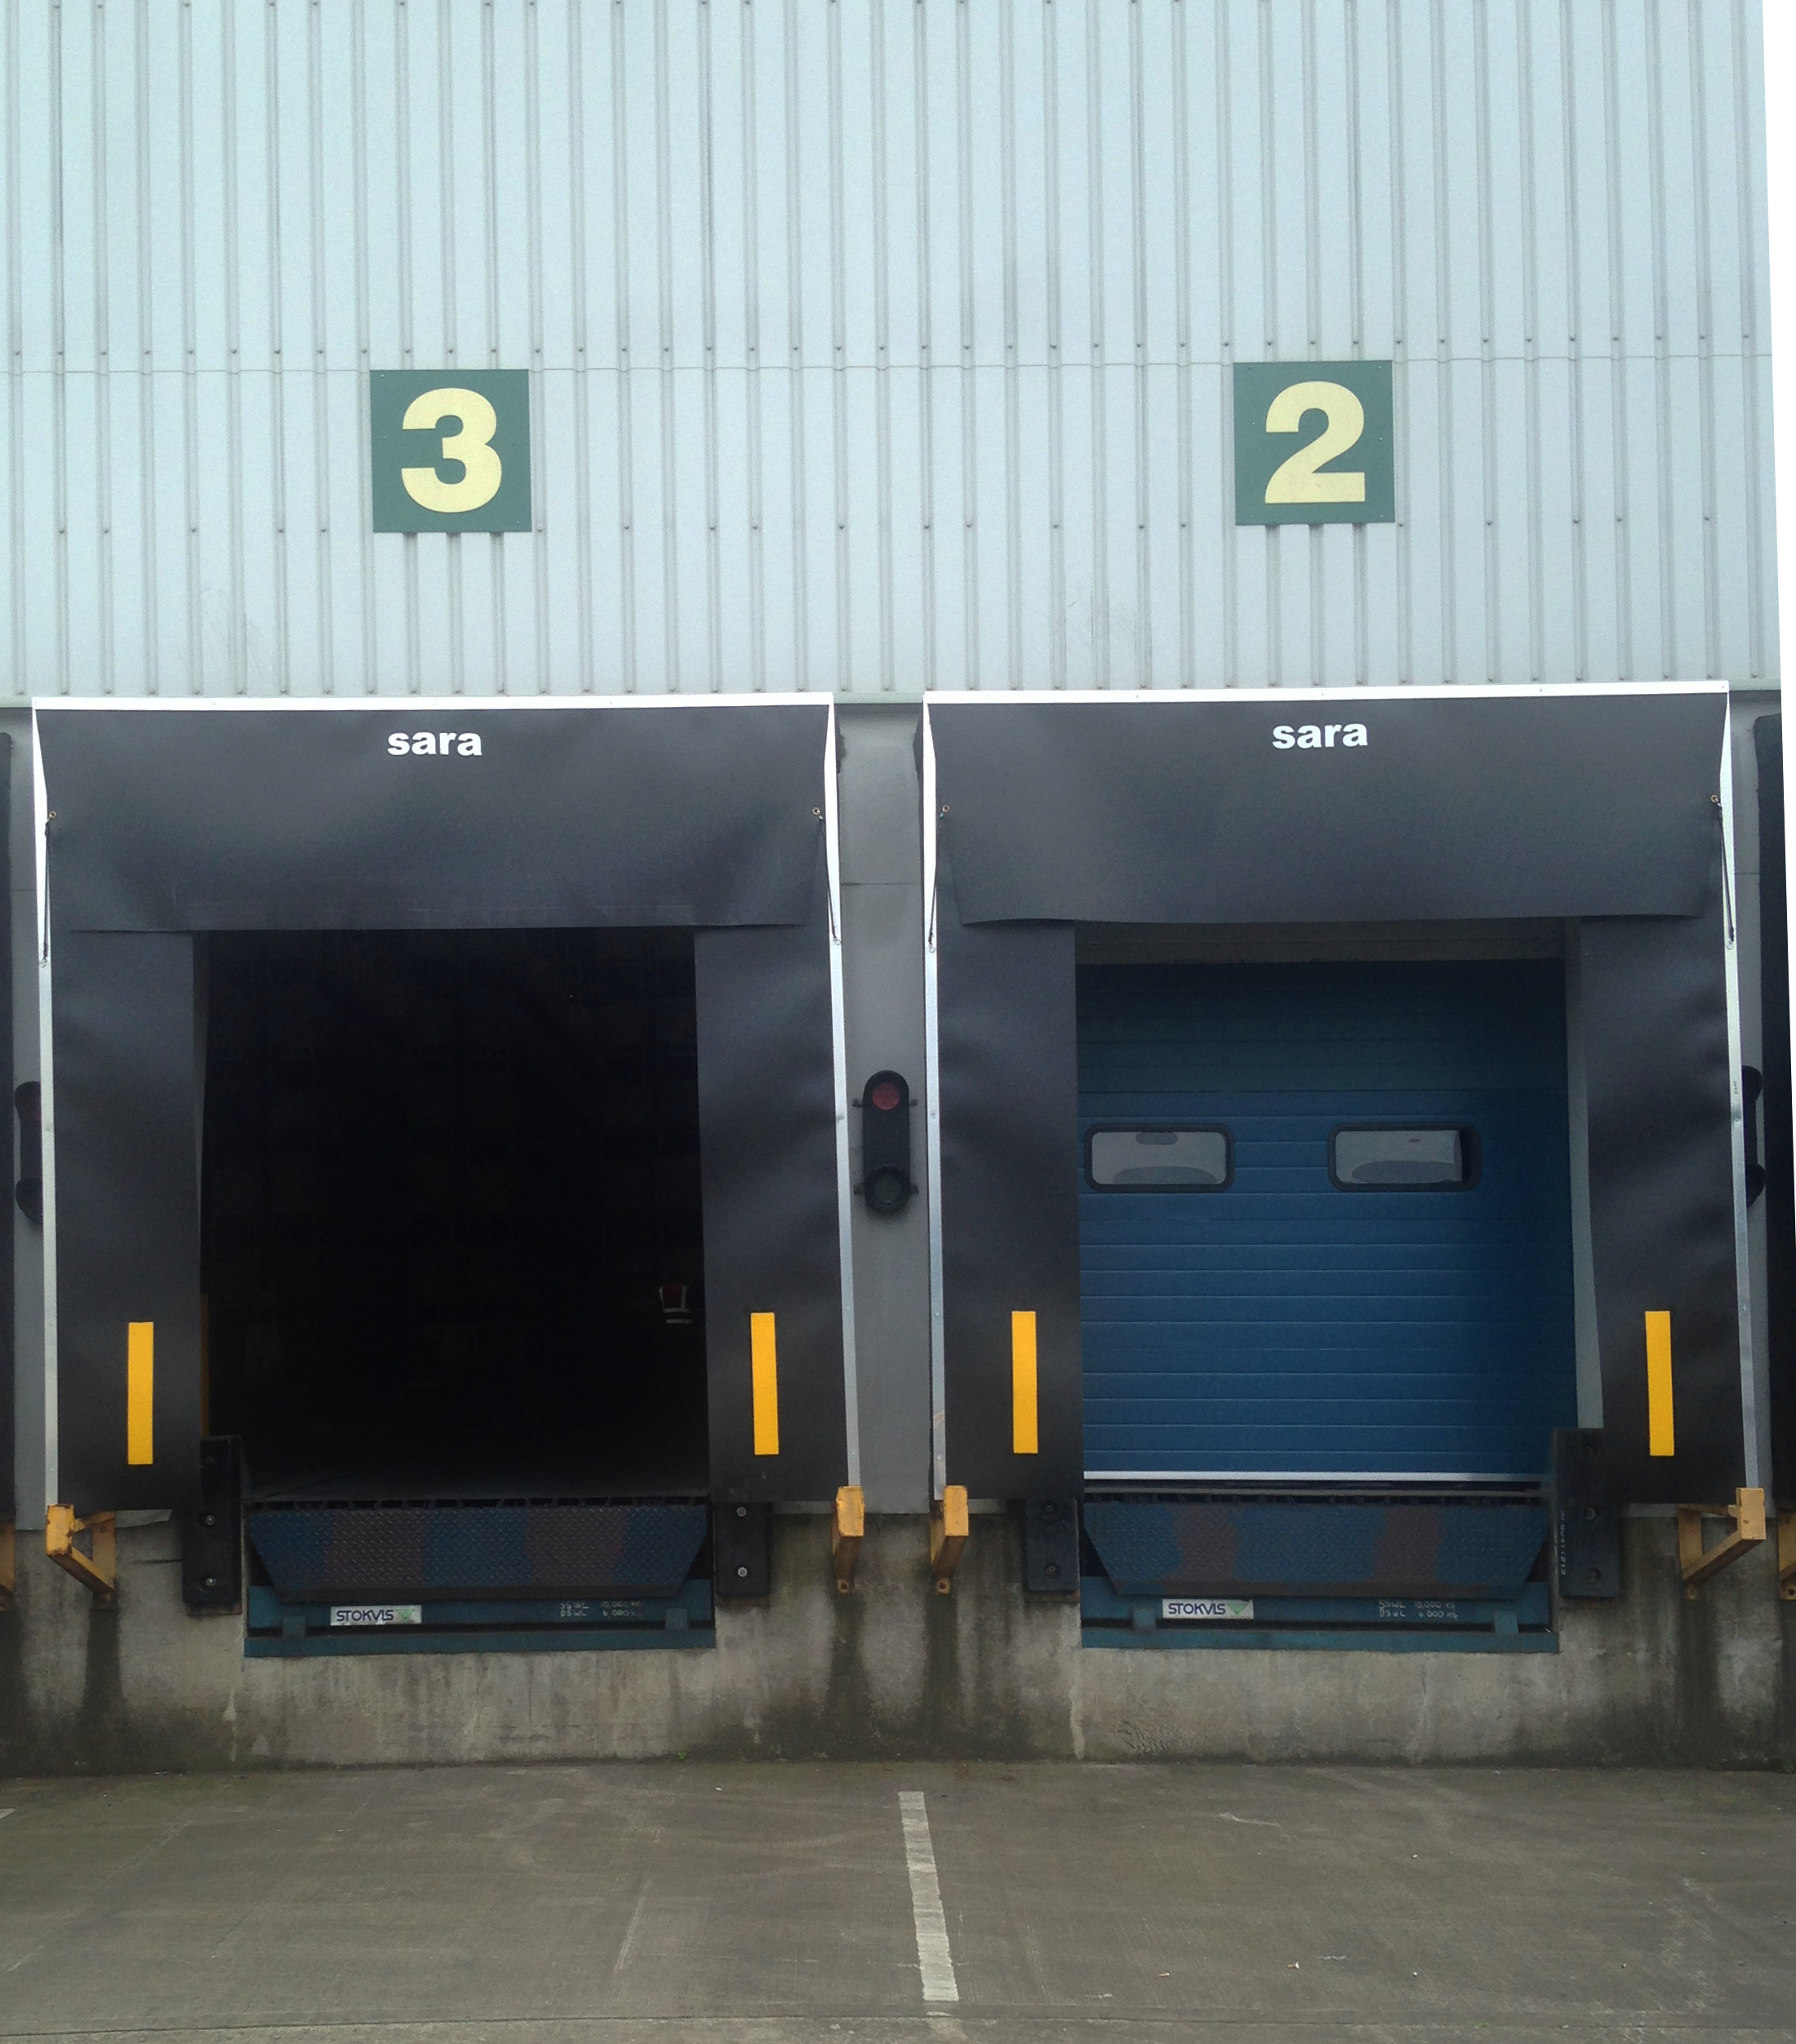 Dock shelters improve working environments and aid productivity